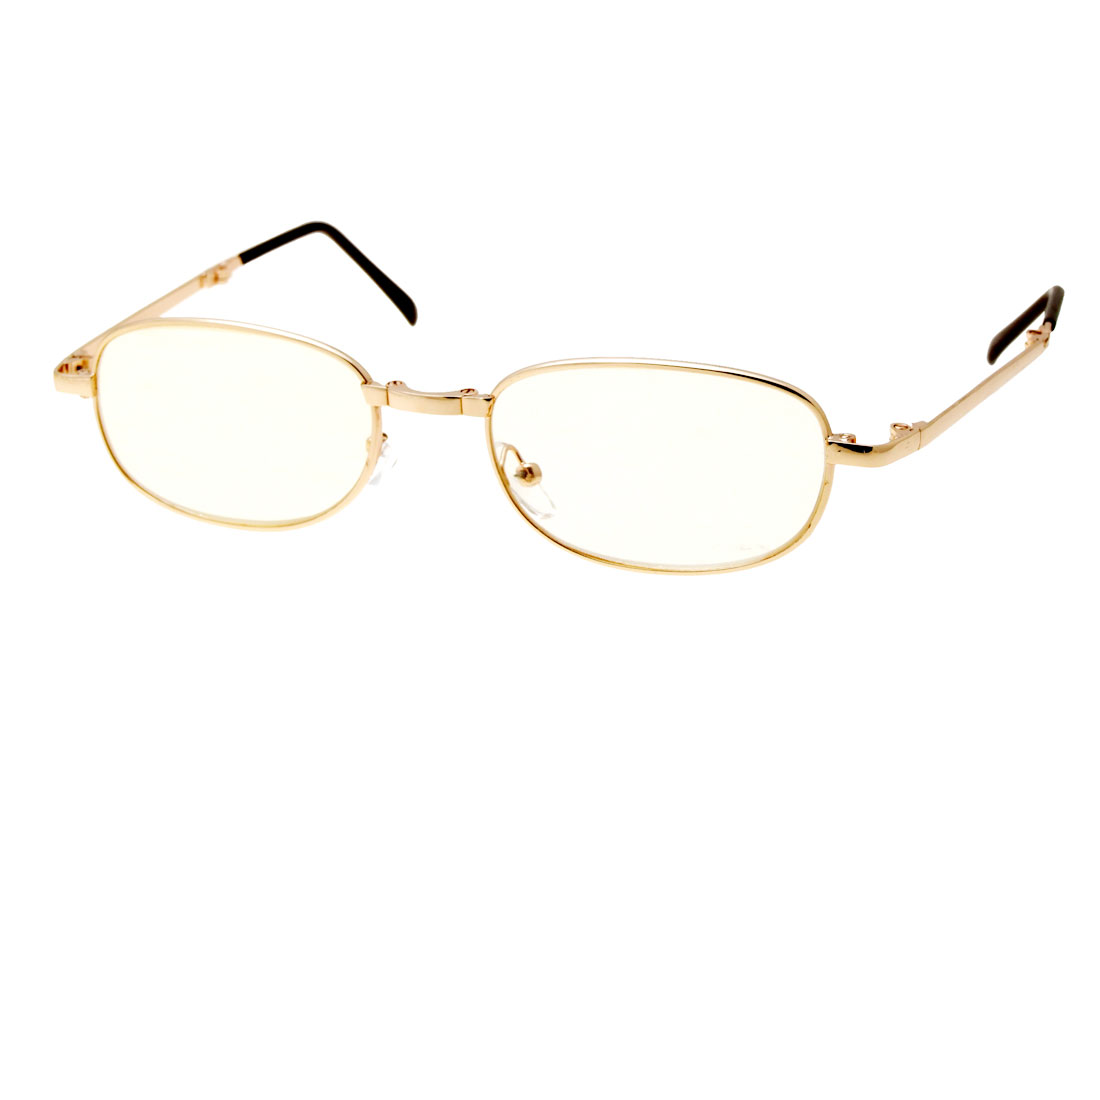 3.50 Folding Golden Presbyopic Magnifying Reading Glasses Eyeglasses